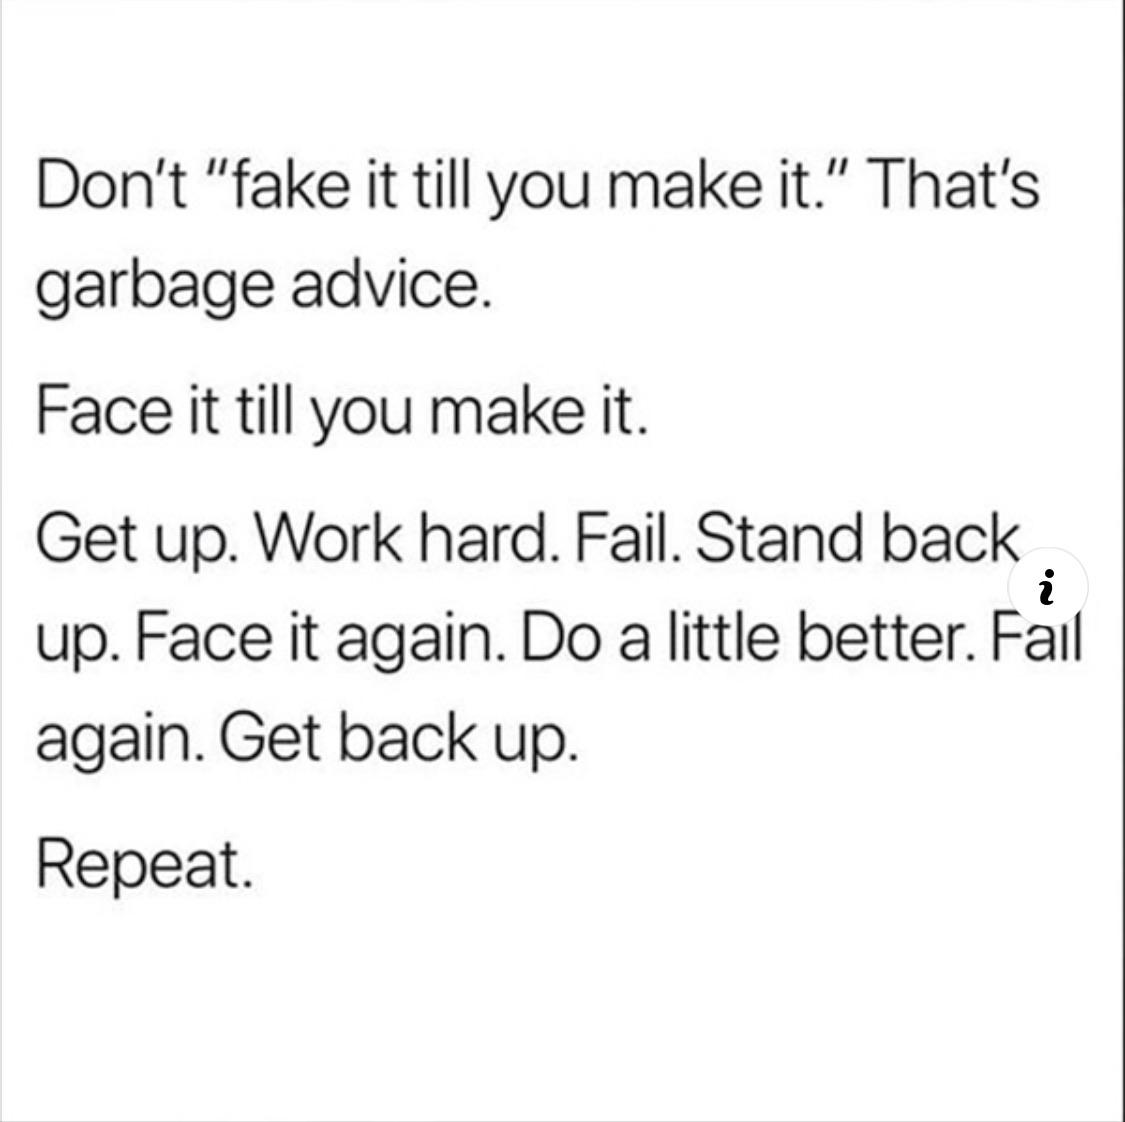 [Image] Face it till you make it